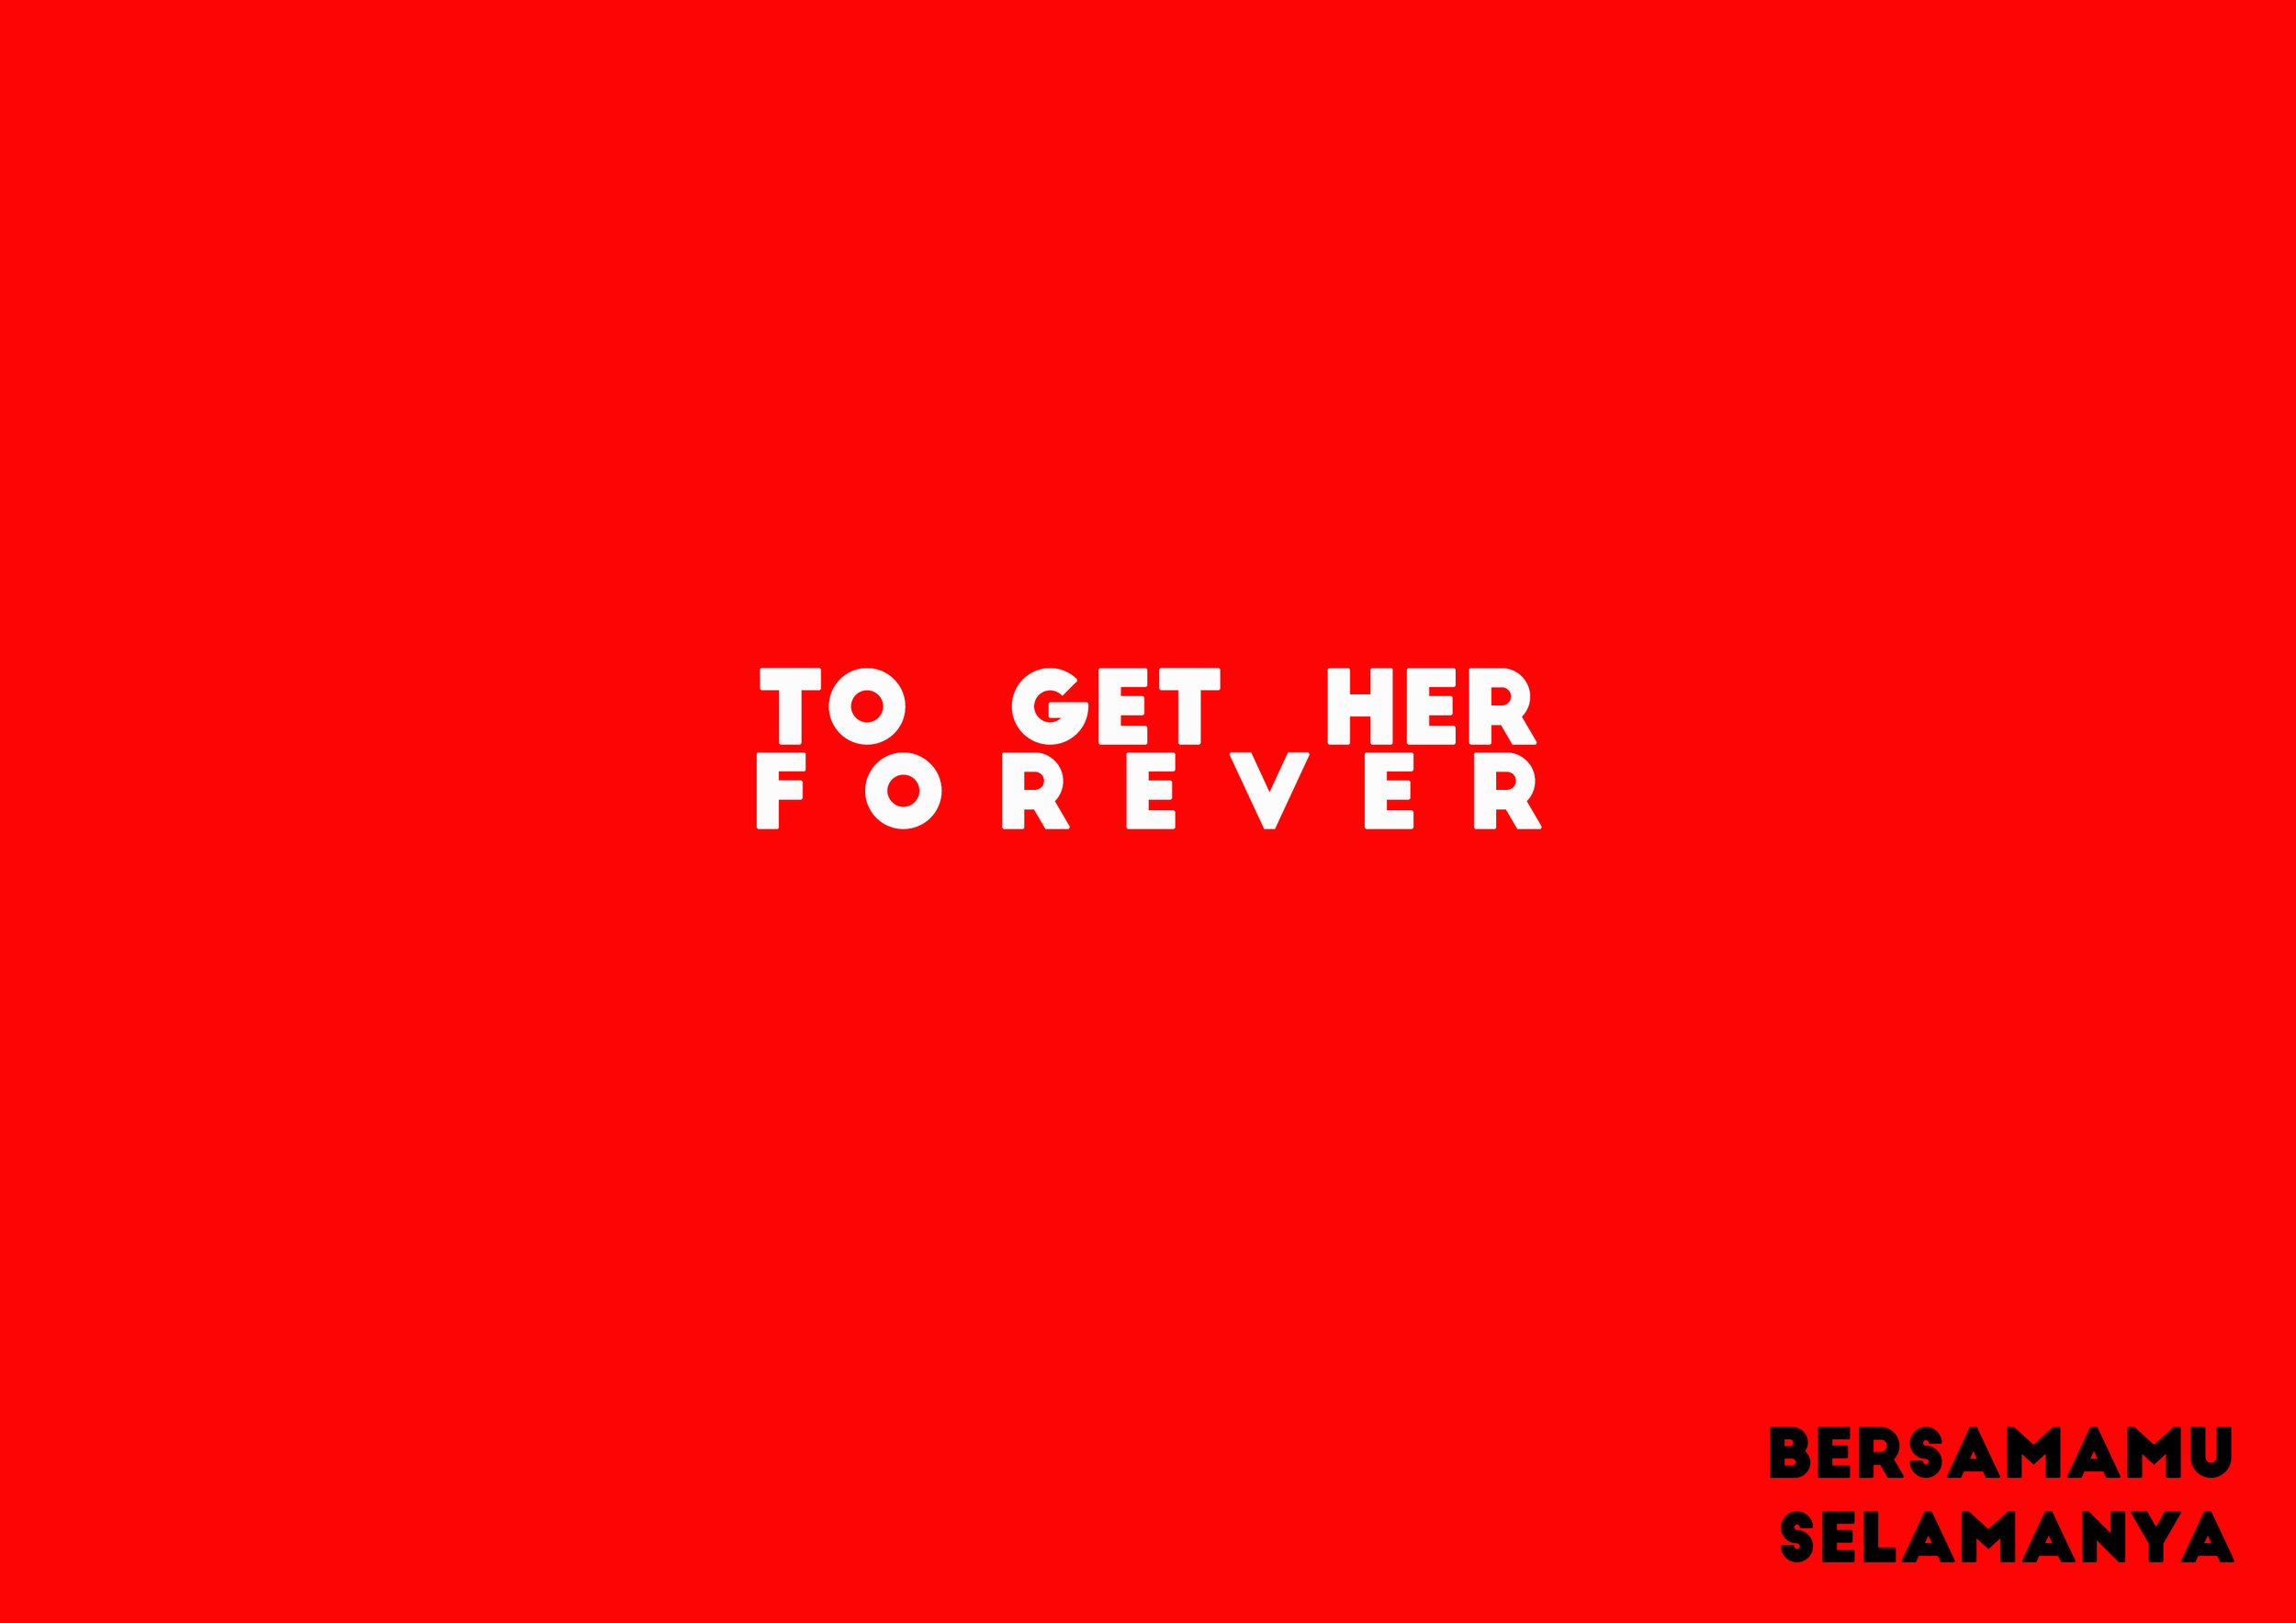 01_To get her forever.jpg